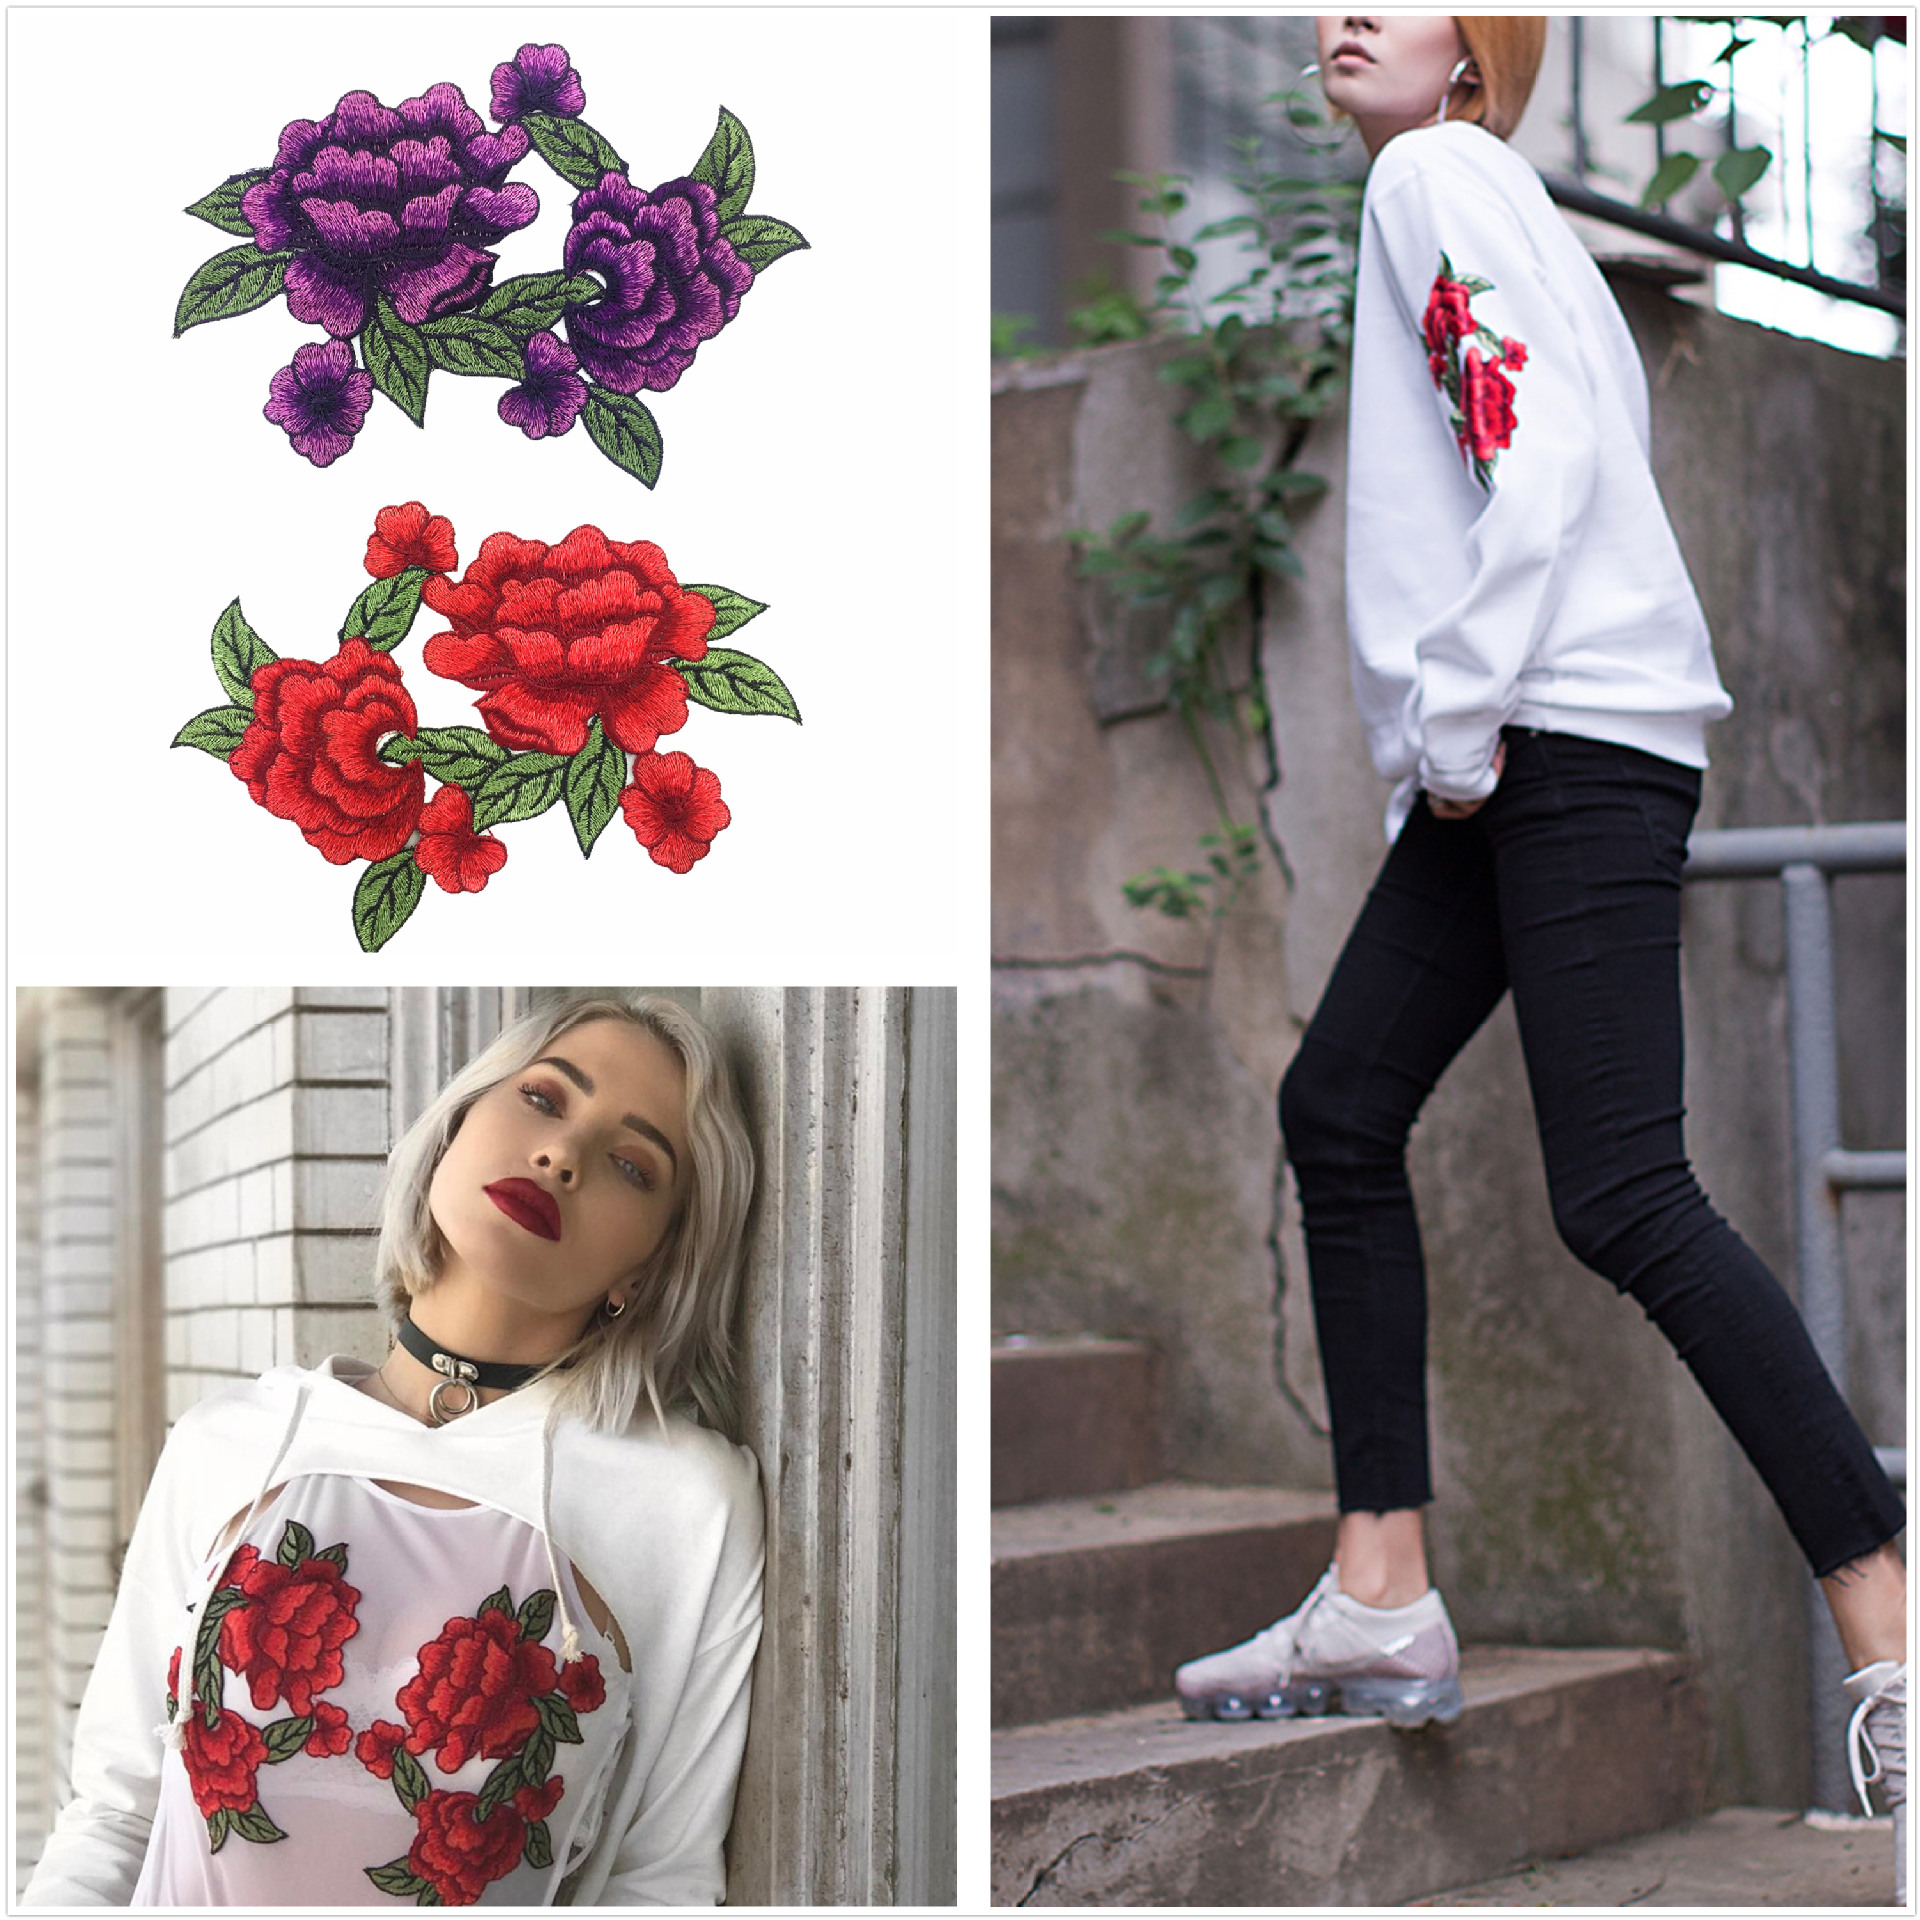 Iron On New Rose Embroidery Patch Sewing Technology  Be Applied To Clothes, Trousers, Skirts, Jackets